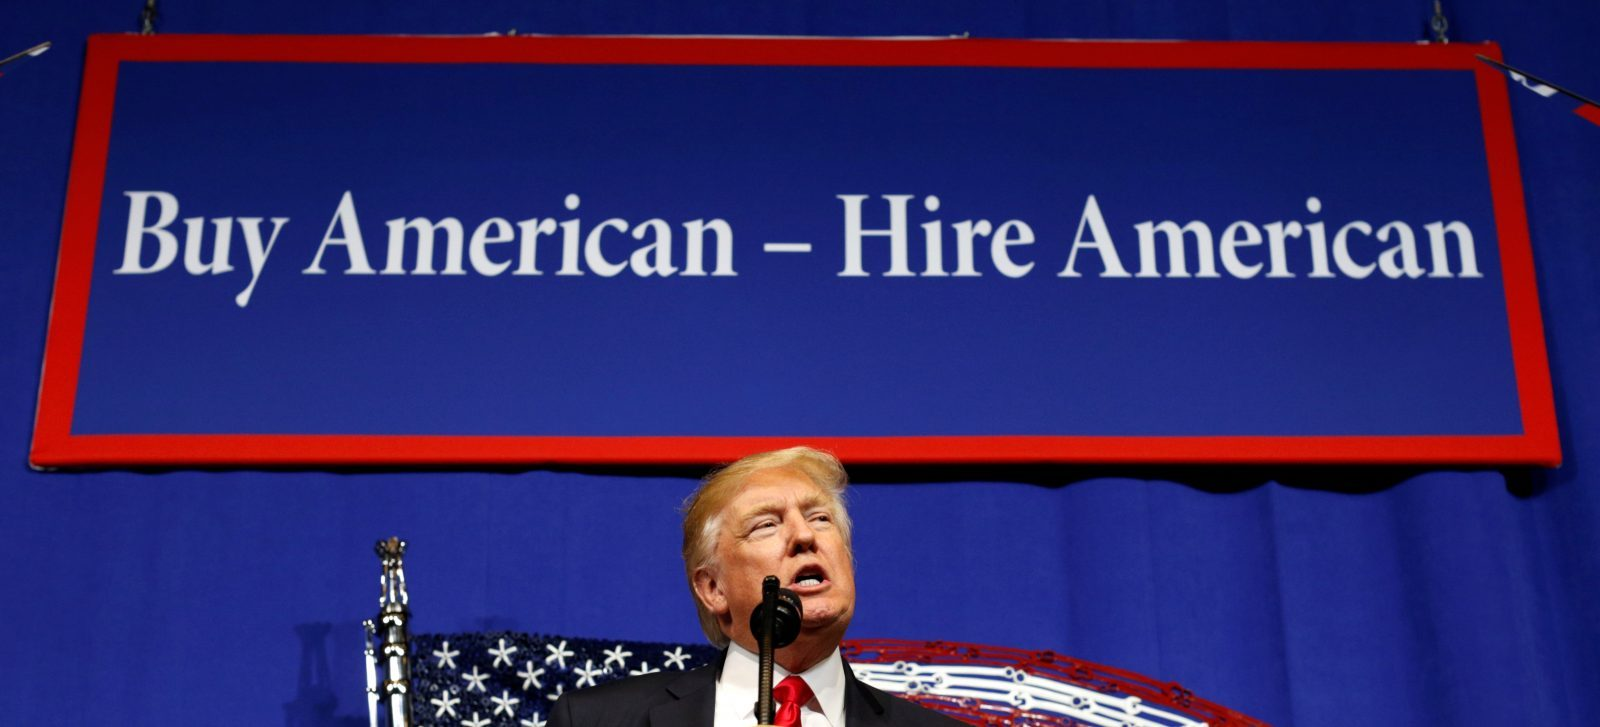 U.S. President Donald Trump speaks before signing an executive order directing federal agencies to recommend changes to a temporary visa program used to bring foreign workers to the United States to fill high-skilled jobs during a visit to the world headquarters of Snap-On Inc, a tool manufacturer in Kenosha, Wisconsin, U.S., April 18, 2017.  REUTERS/Kevin Lamarque - RTS12UB9